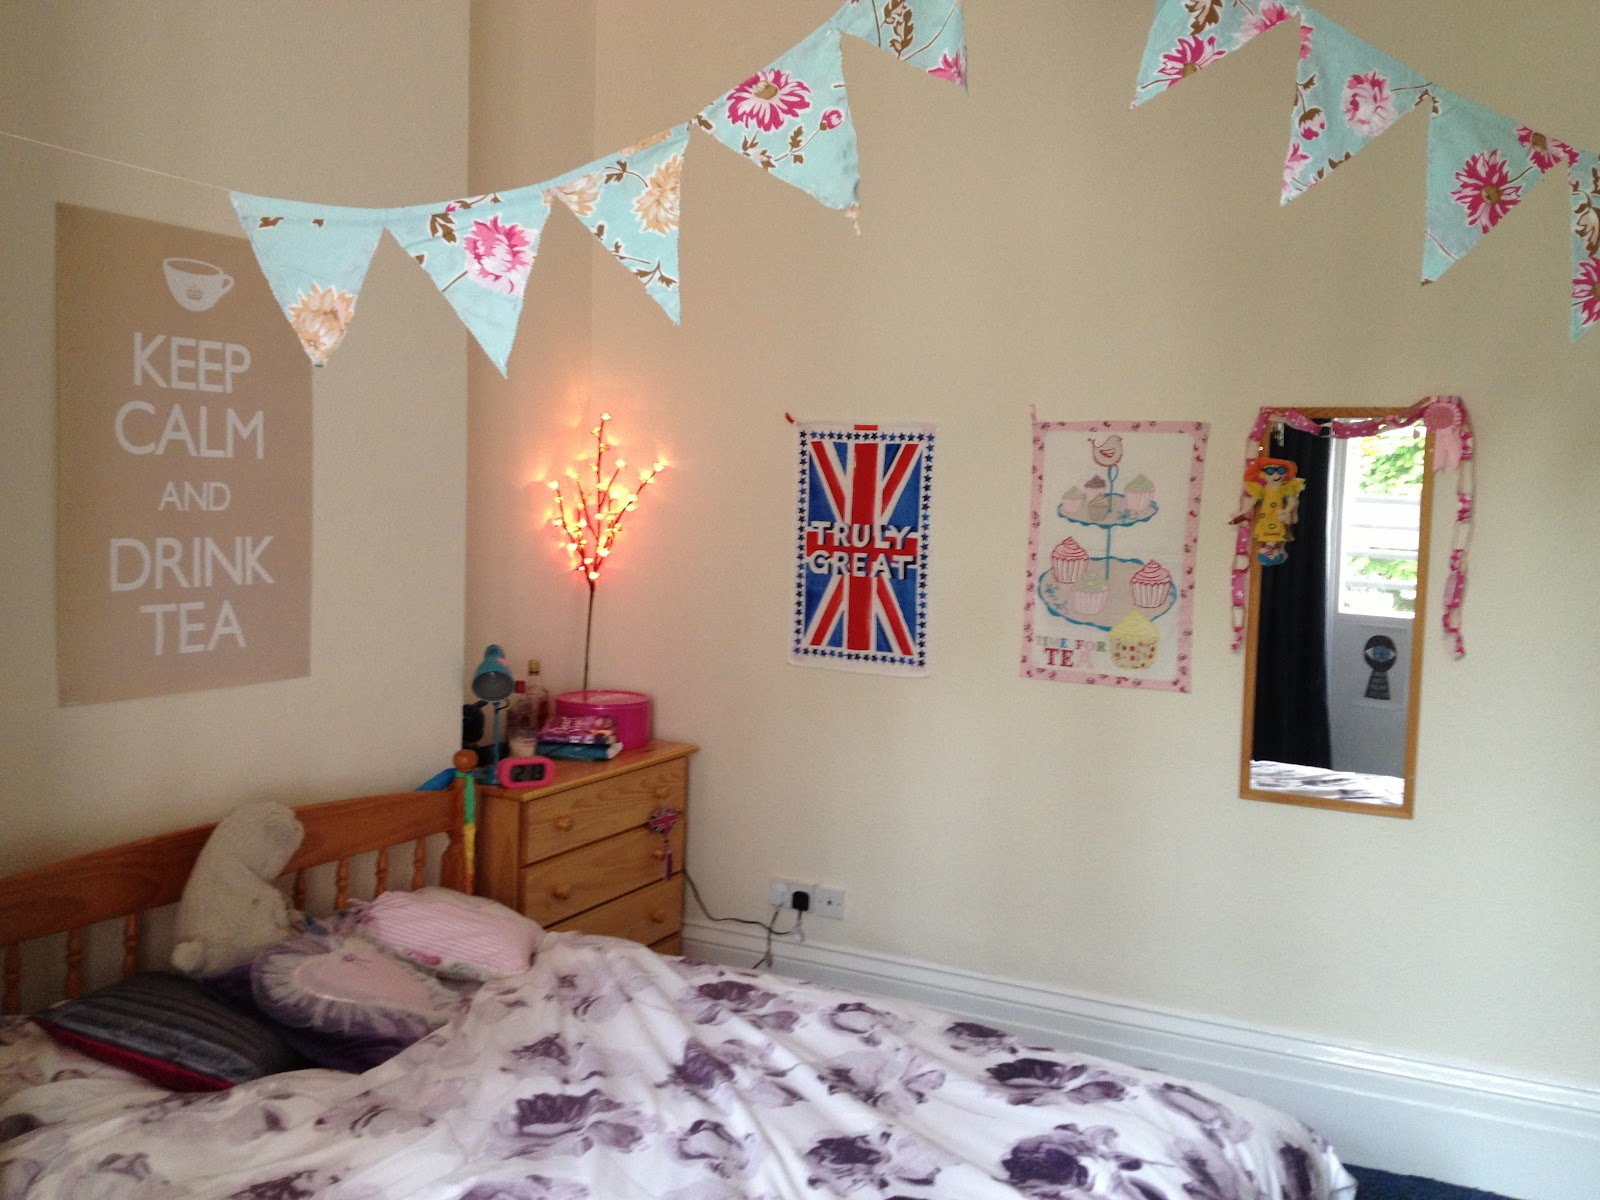 The twenty best ways to decorate your student room at uni for House decoration things